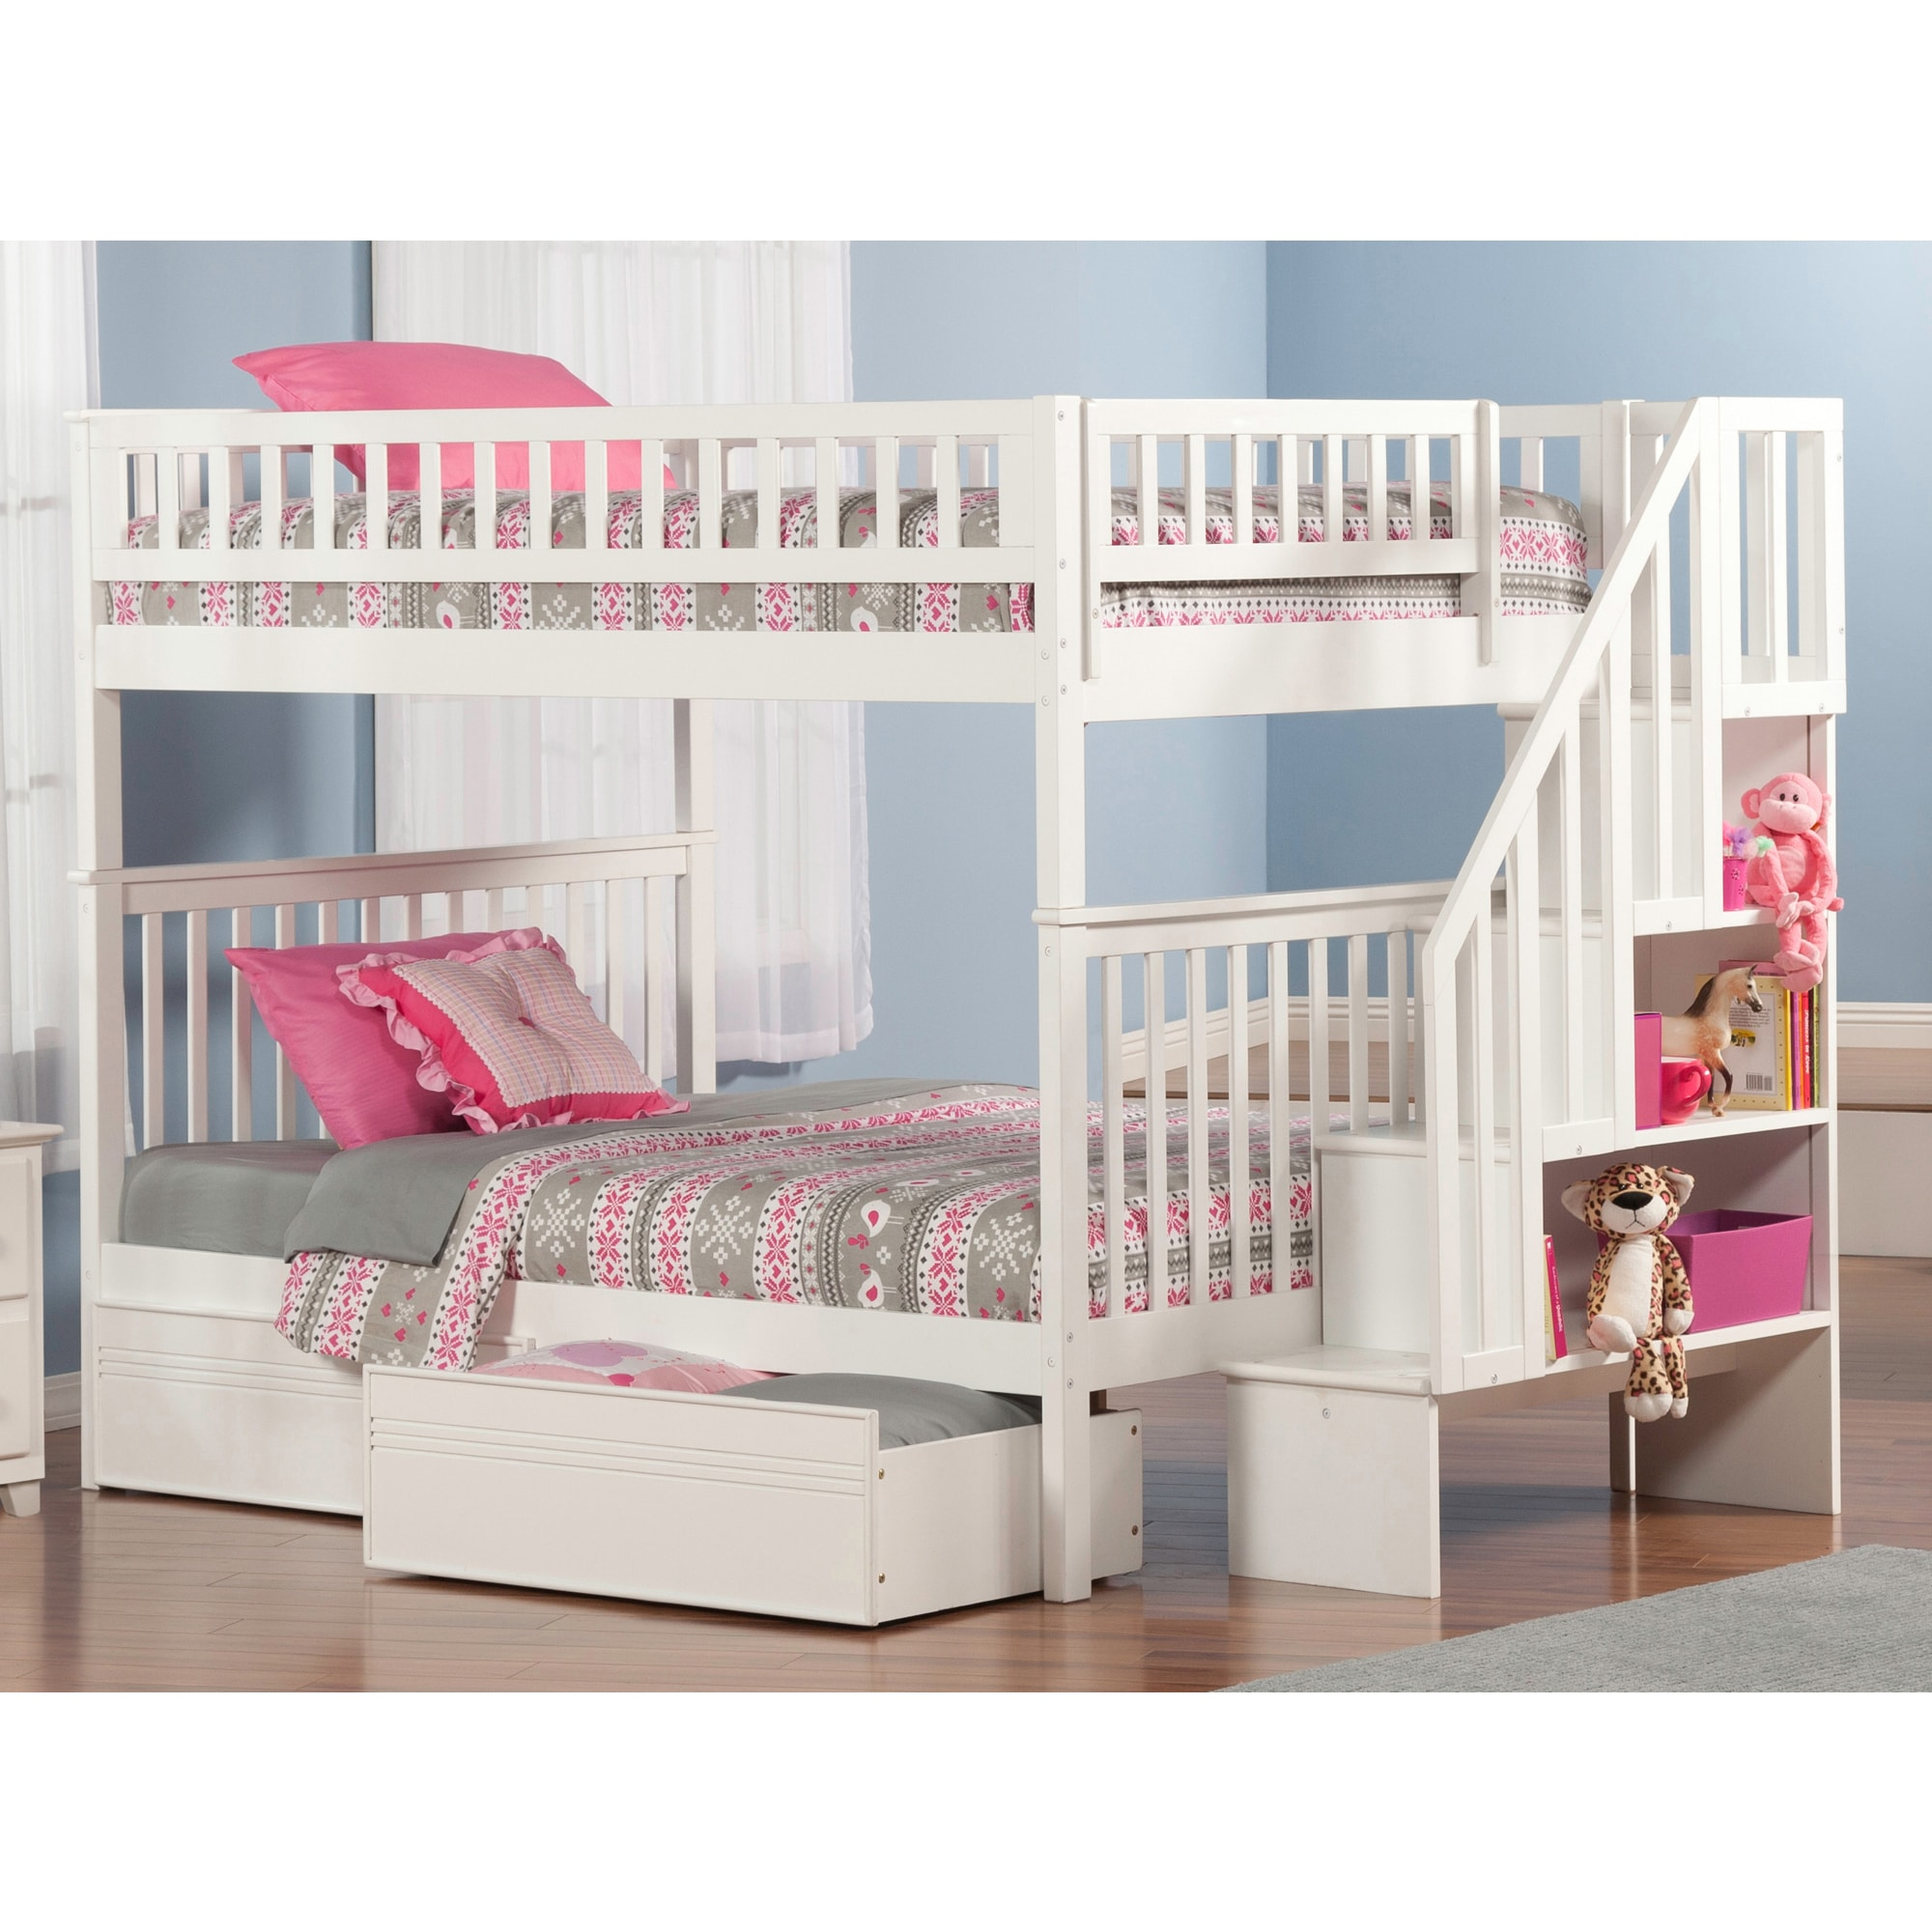 Atlantic Furniture Woodland Staircase Bunk Bed Full over Full with Flat Panel Bed Drawers in White